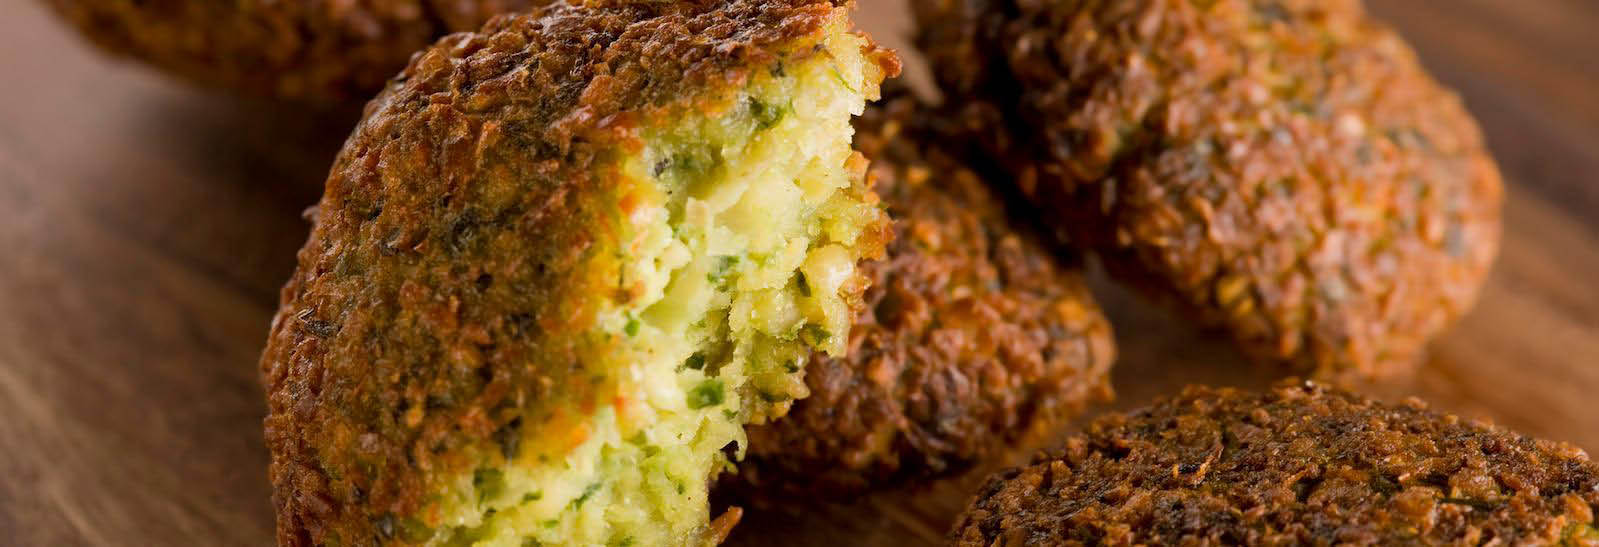 Mediterranean Cuisine - Falafel perfectly seasoned with spices and herbs banner